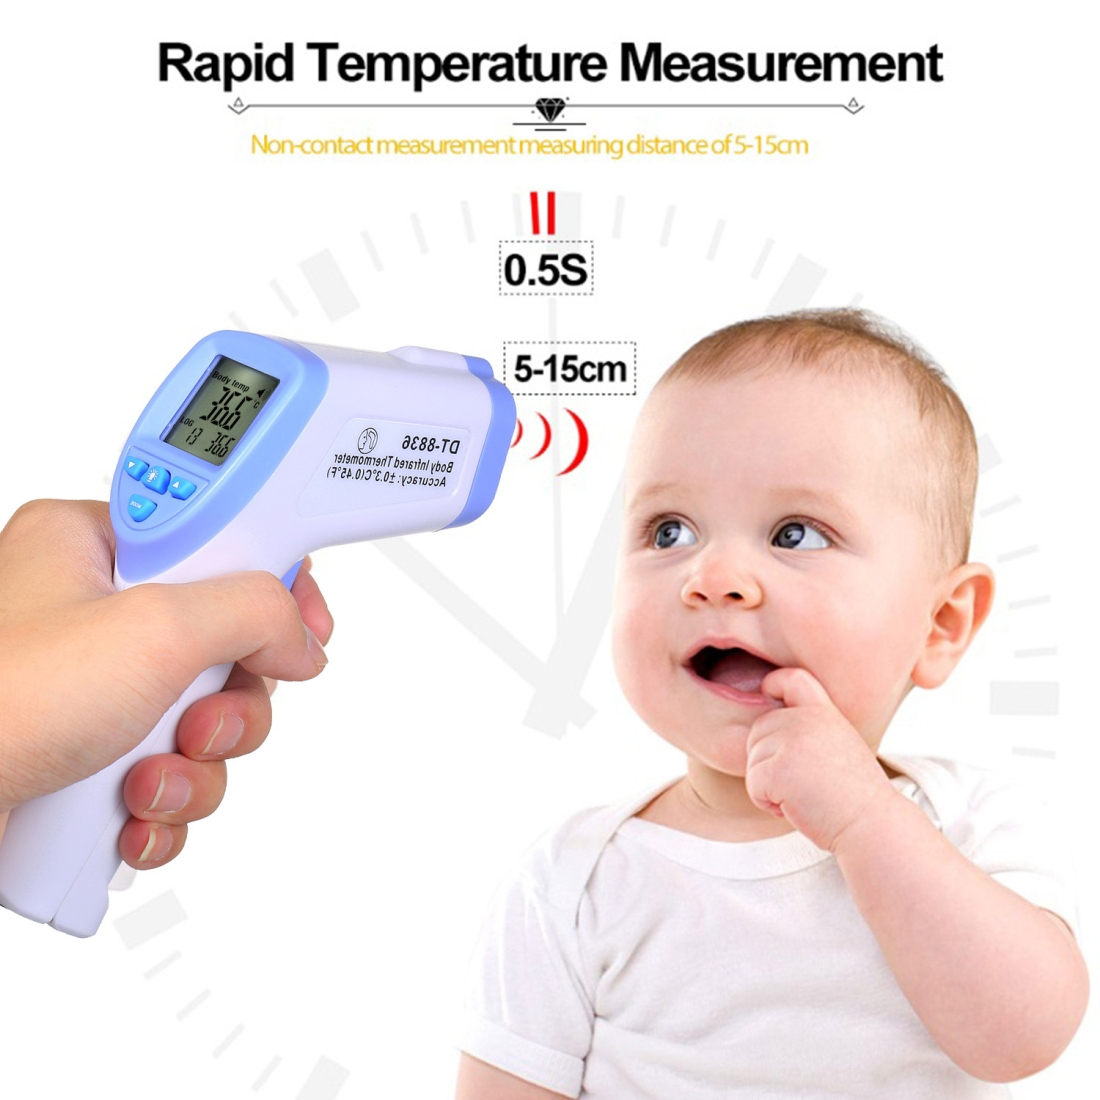 DT-8836 Non-contact Forehead Body Infrared Thermometer, Temperature Range: 32.0 Degree C - 42.5 Degree C